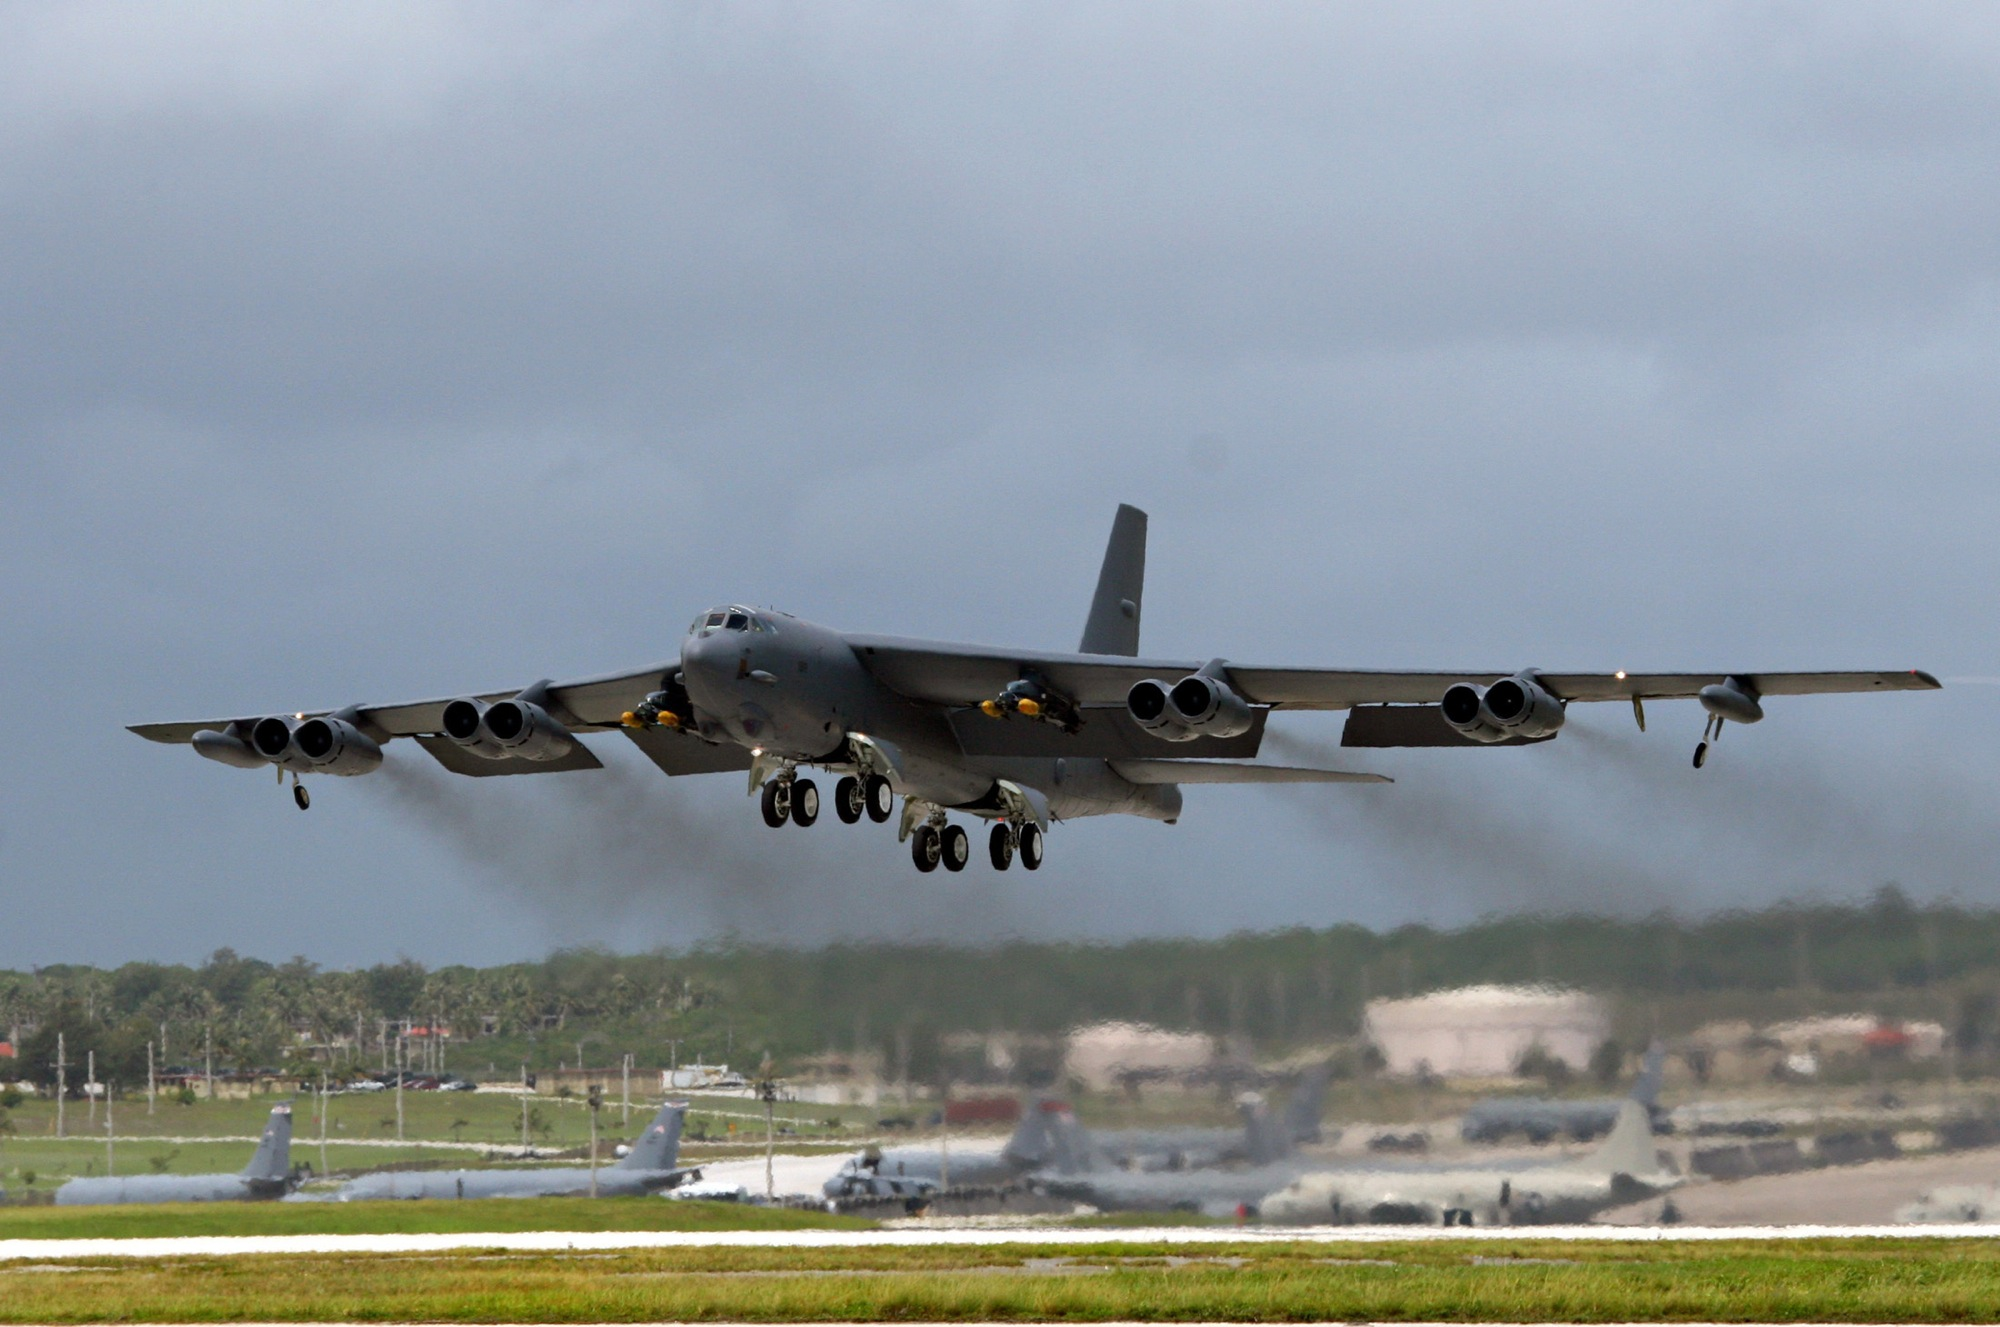 A B-52 bomber, deployed at Andersen Air Force Base, Guam, from Barksdale Air Force Base, La., takes off for September?s Koa Lightning exercise.  For the first time, B-52 crews dropped inert munitions on Pele Bombing Range, Hawaii.  The munitions are made from concrete and have GPS guidance, which make them safe for the environment. This training provides valuable simulated combat experience for the aircrews and translates into raw global combat power against the continuing war on terrorism. (U.S. Air Force photo/Senior Master Sgt. Mahmoud Rasouliyan)